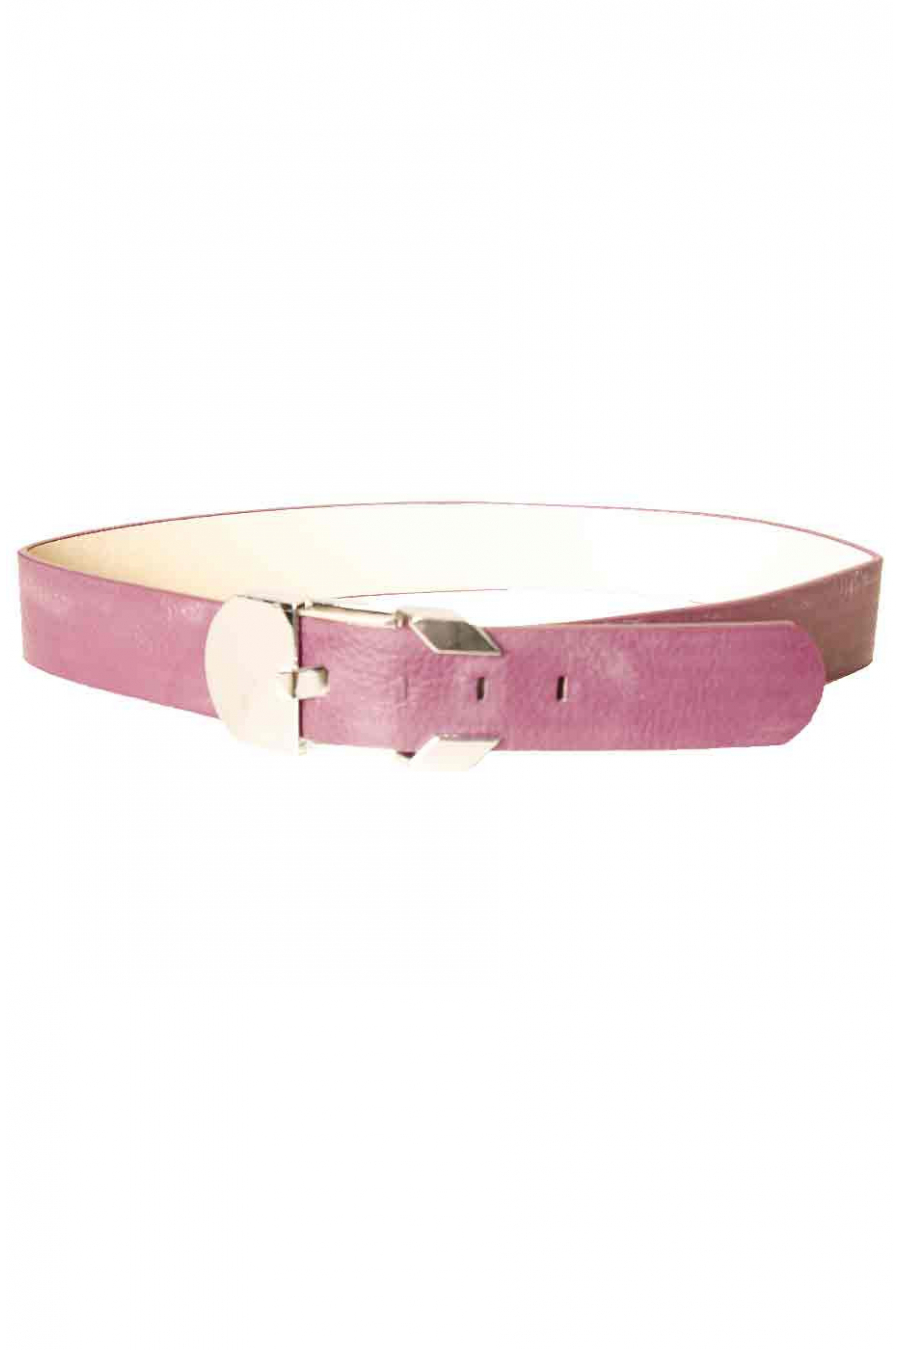 Purple belt with rectangle buckle X85-102